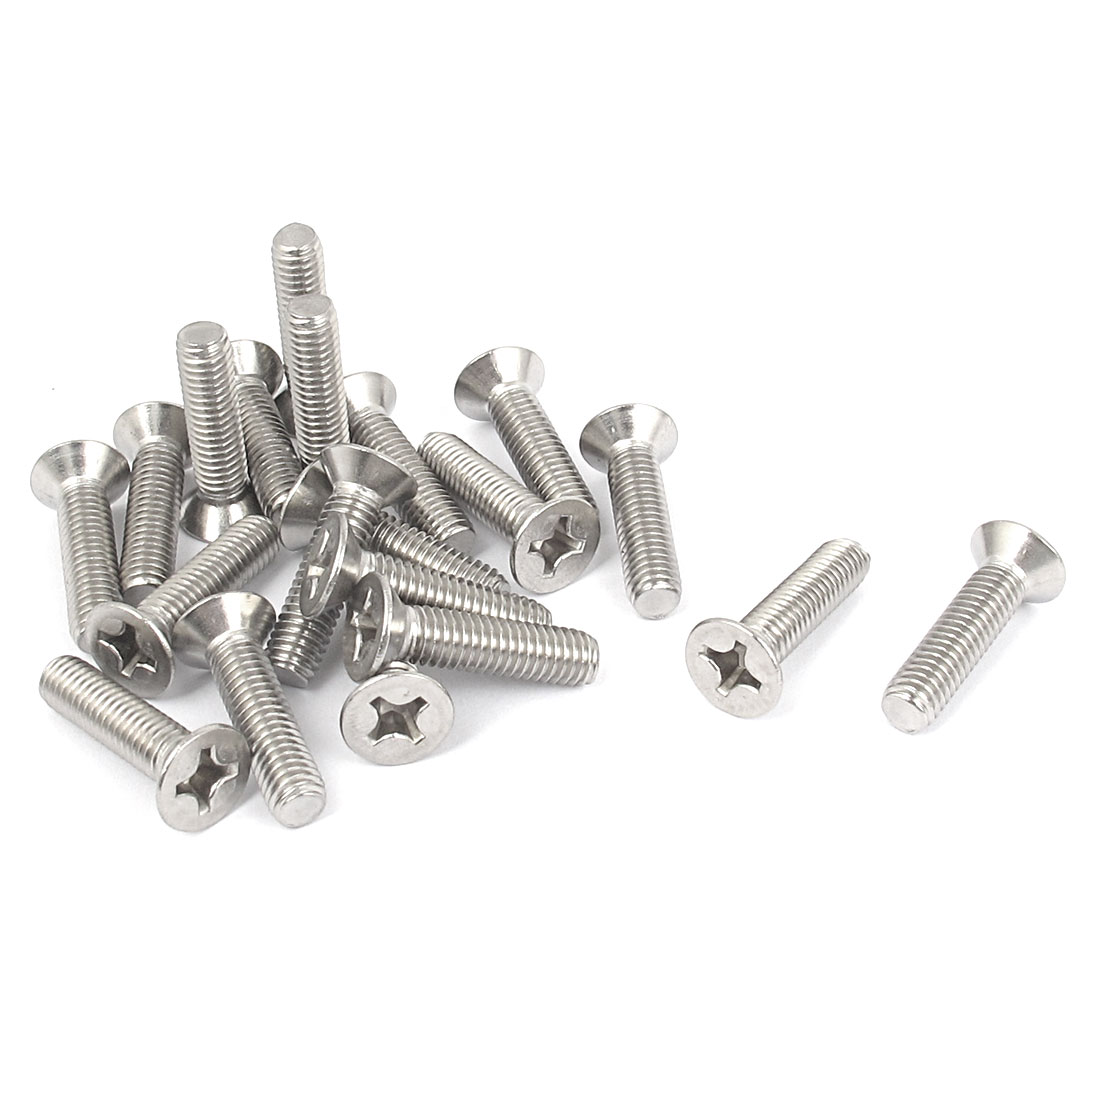 M6 x 25mm Metric Phillips Flat Head Countersunk Bolts Machine Screws 20pcs